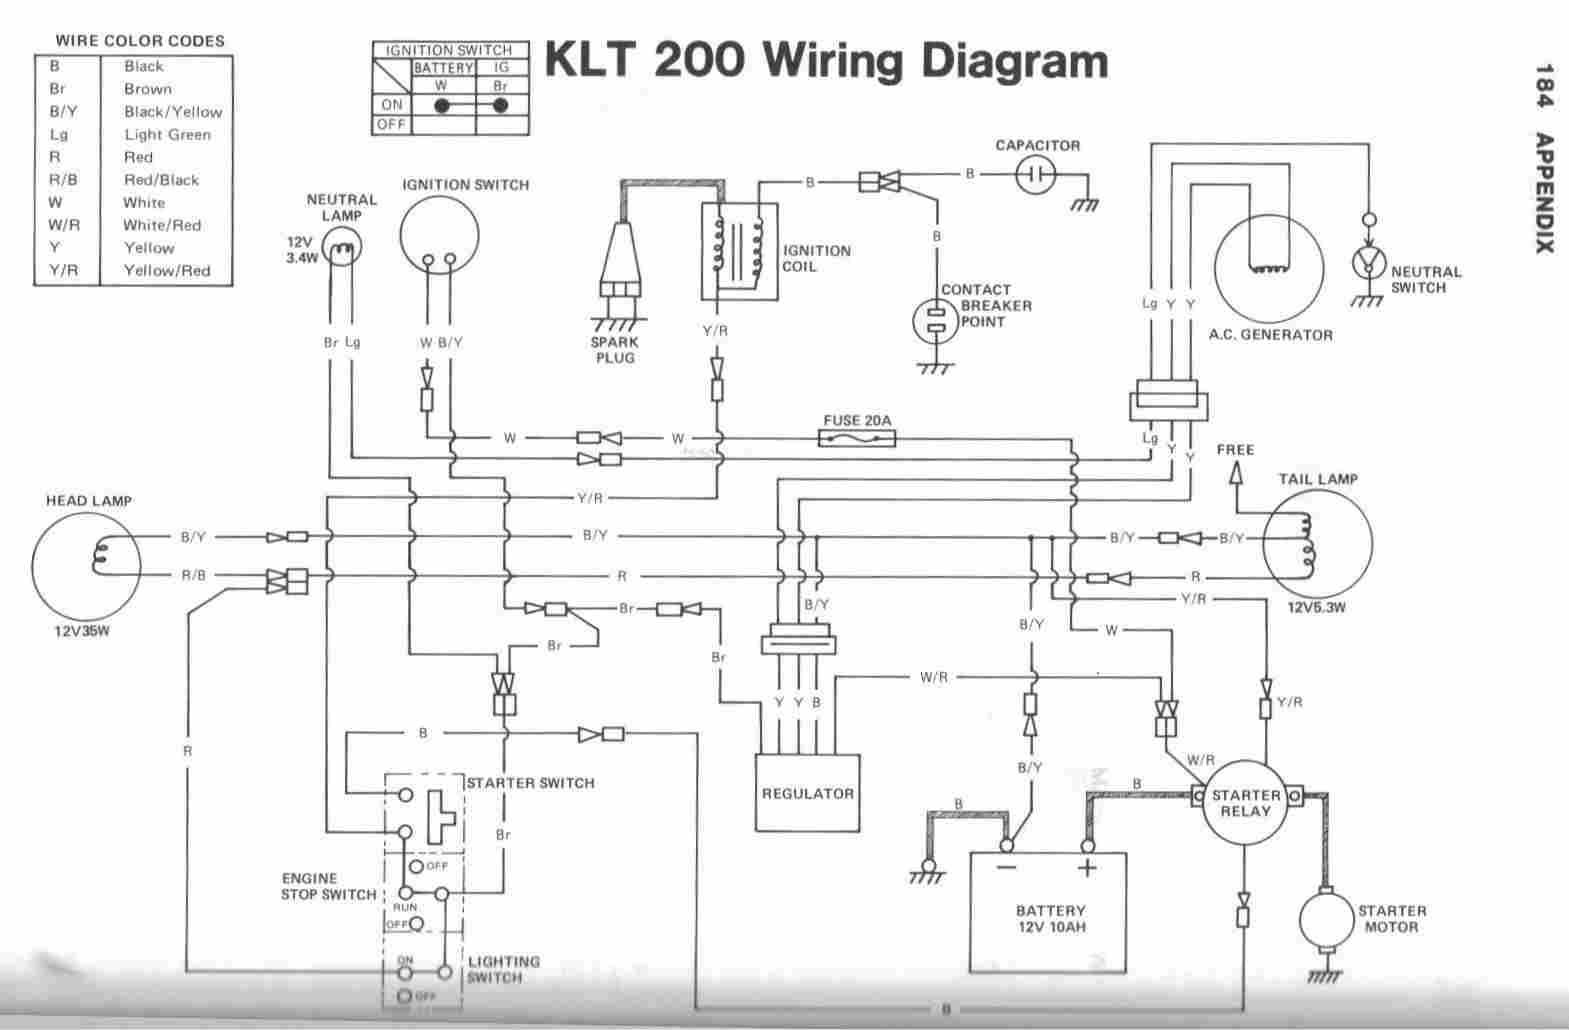 2869034594ce054a636782e5c44b61b4 residential electrical wiring diagrams pdf easy routing cool electrical circuit wiring diagram at reclaimingppi.co